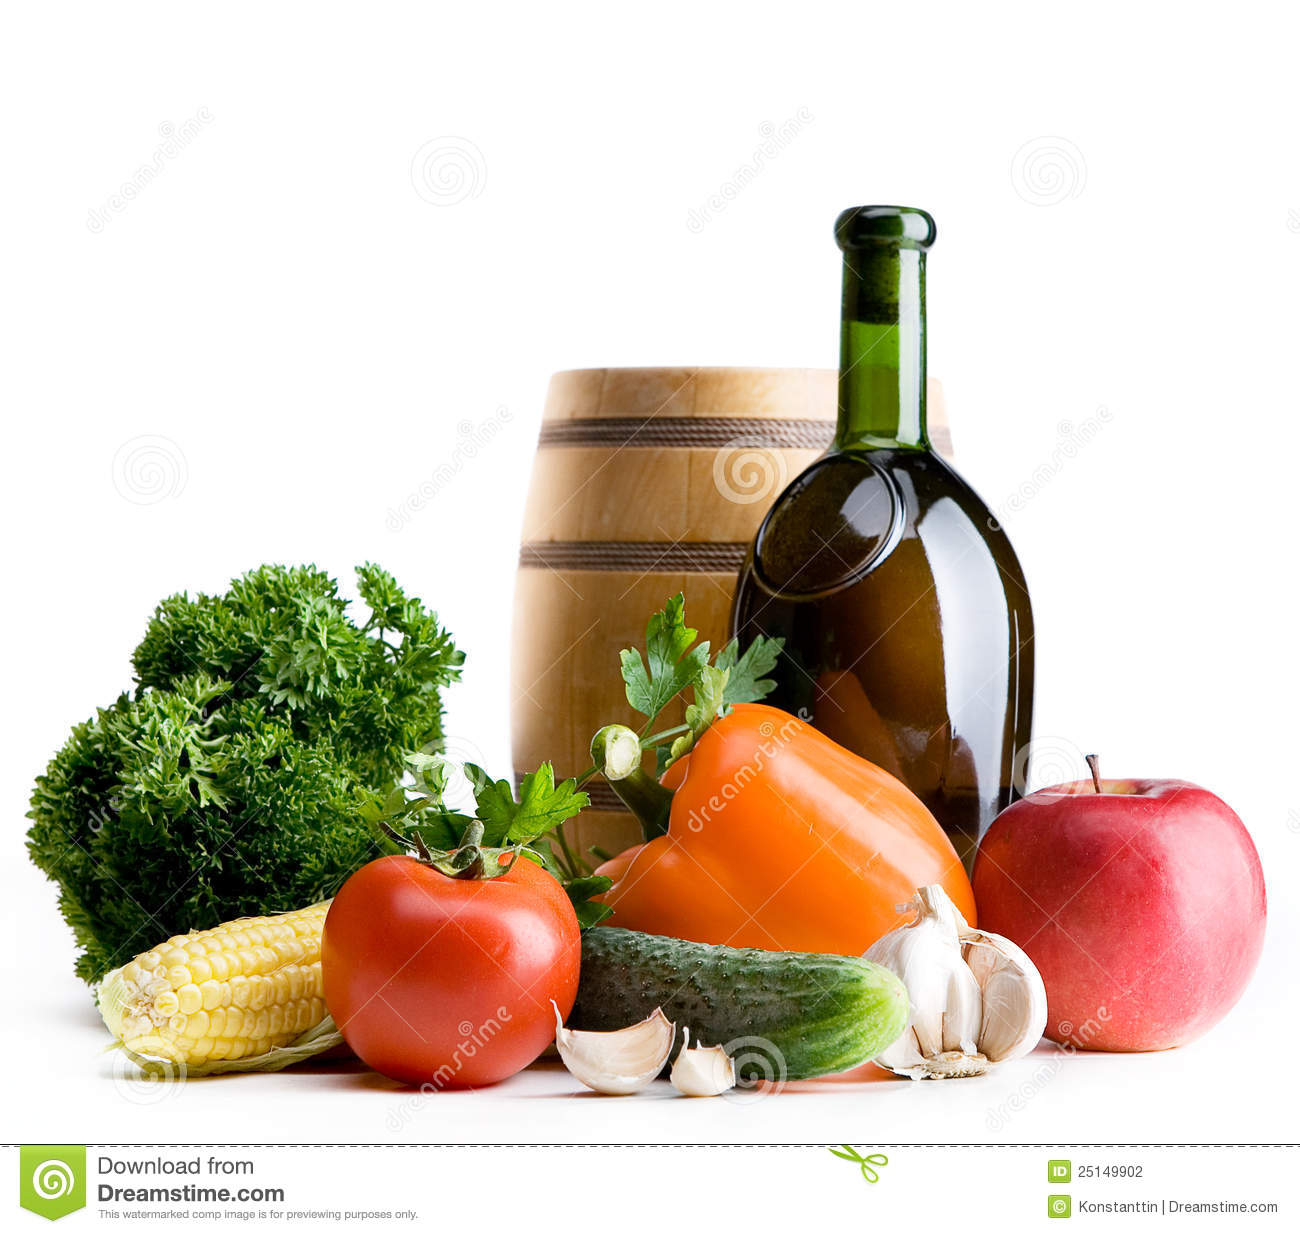 natural and organic food market to Organic food sales increase by double digits annually, far outstripping the growth rate for the overall food market now, an unprecedented and conclusive study links economic health to organic agriculture.